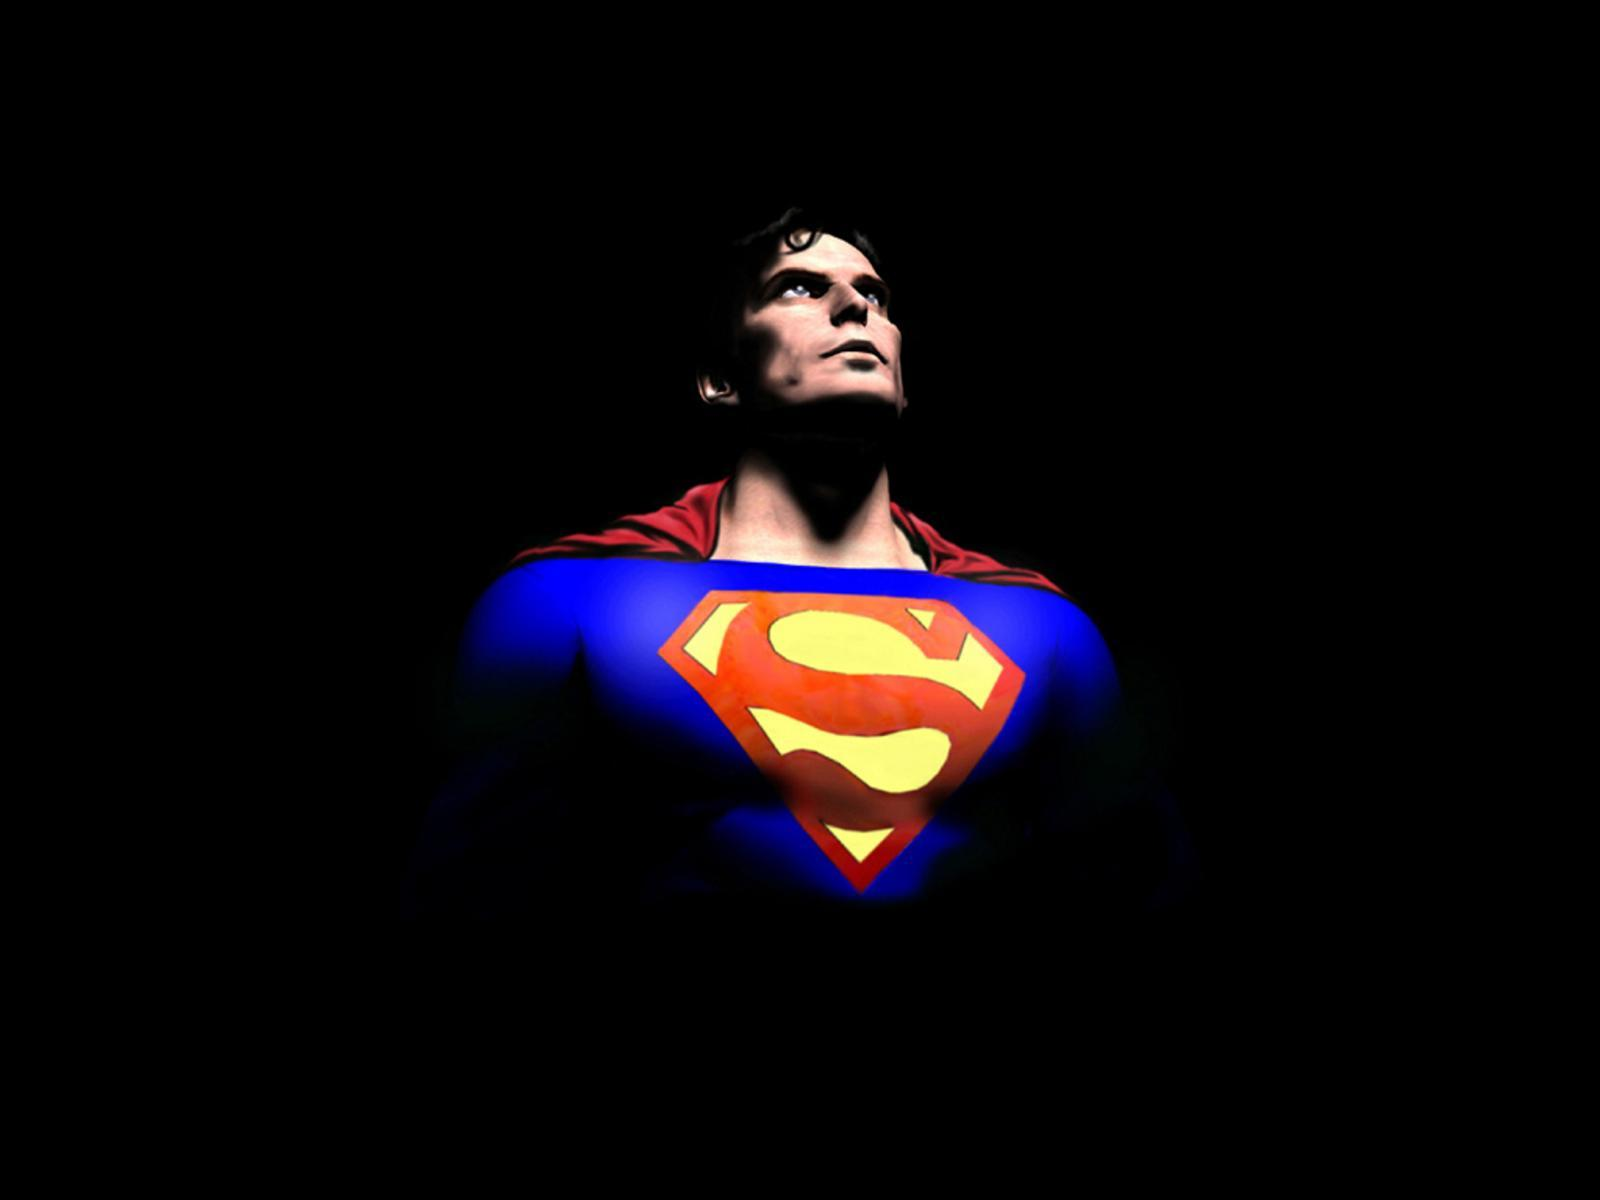 Hd Wallpaper Superman | Free Download Wallpaper | DaWallpaperz